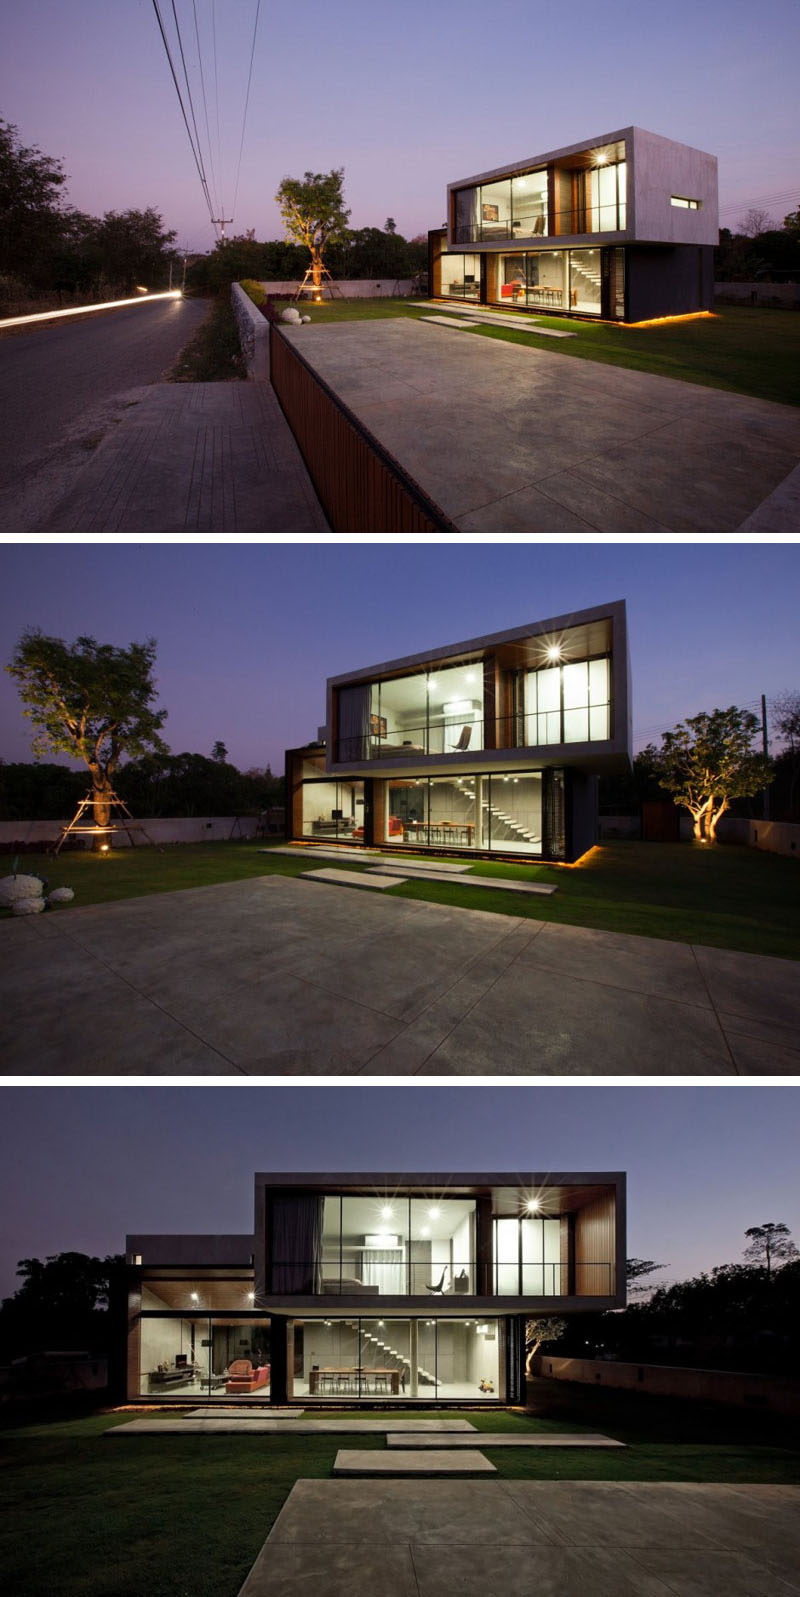 A small concrete wall defines the property line of this house, and a concrete path leads you to the entrance.